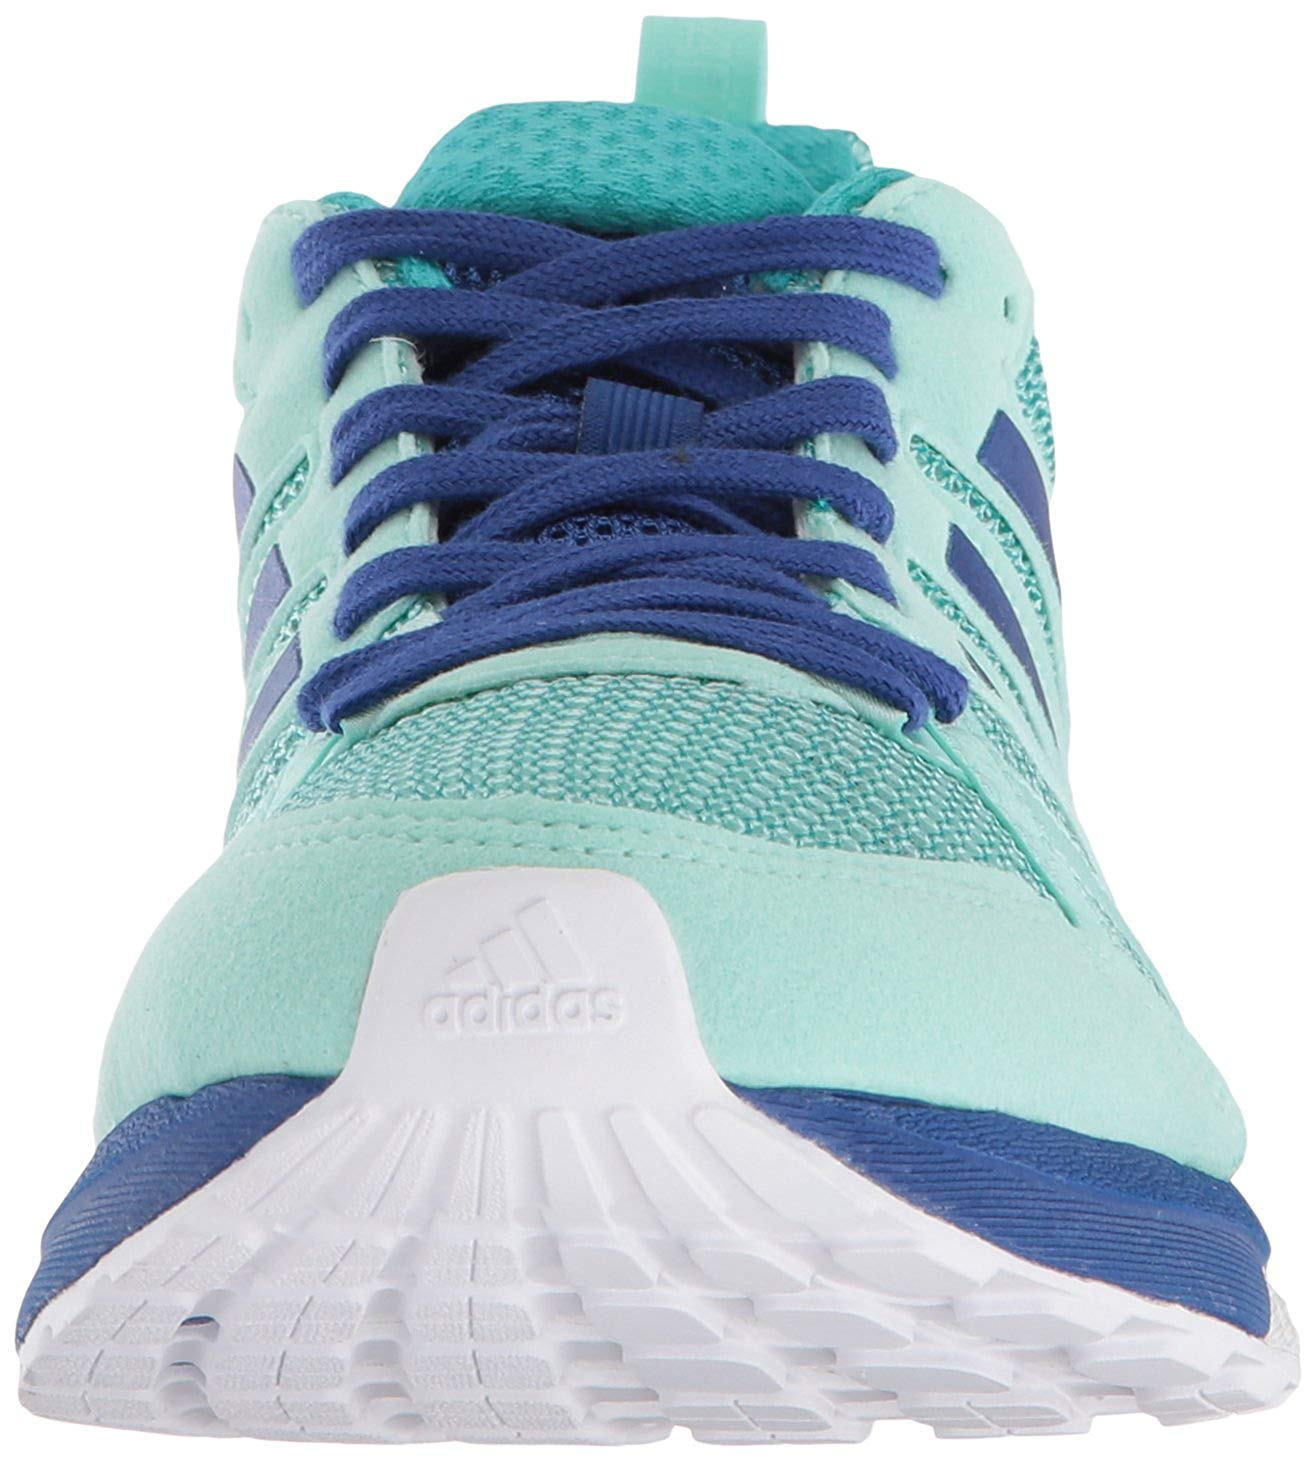 dc8fc9019 Adidas Womens Adizero Tempo 9 Fabric Low Top Lace Up Running Sneaker ...